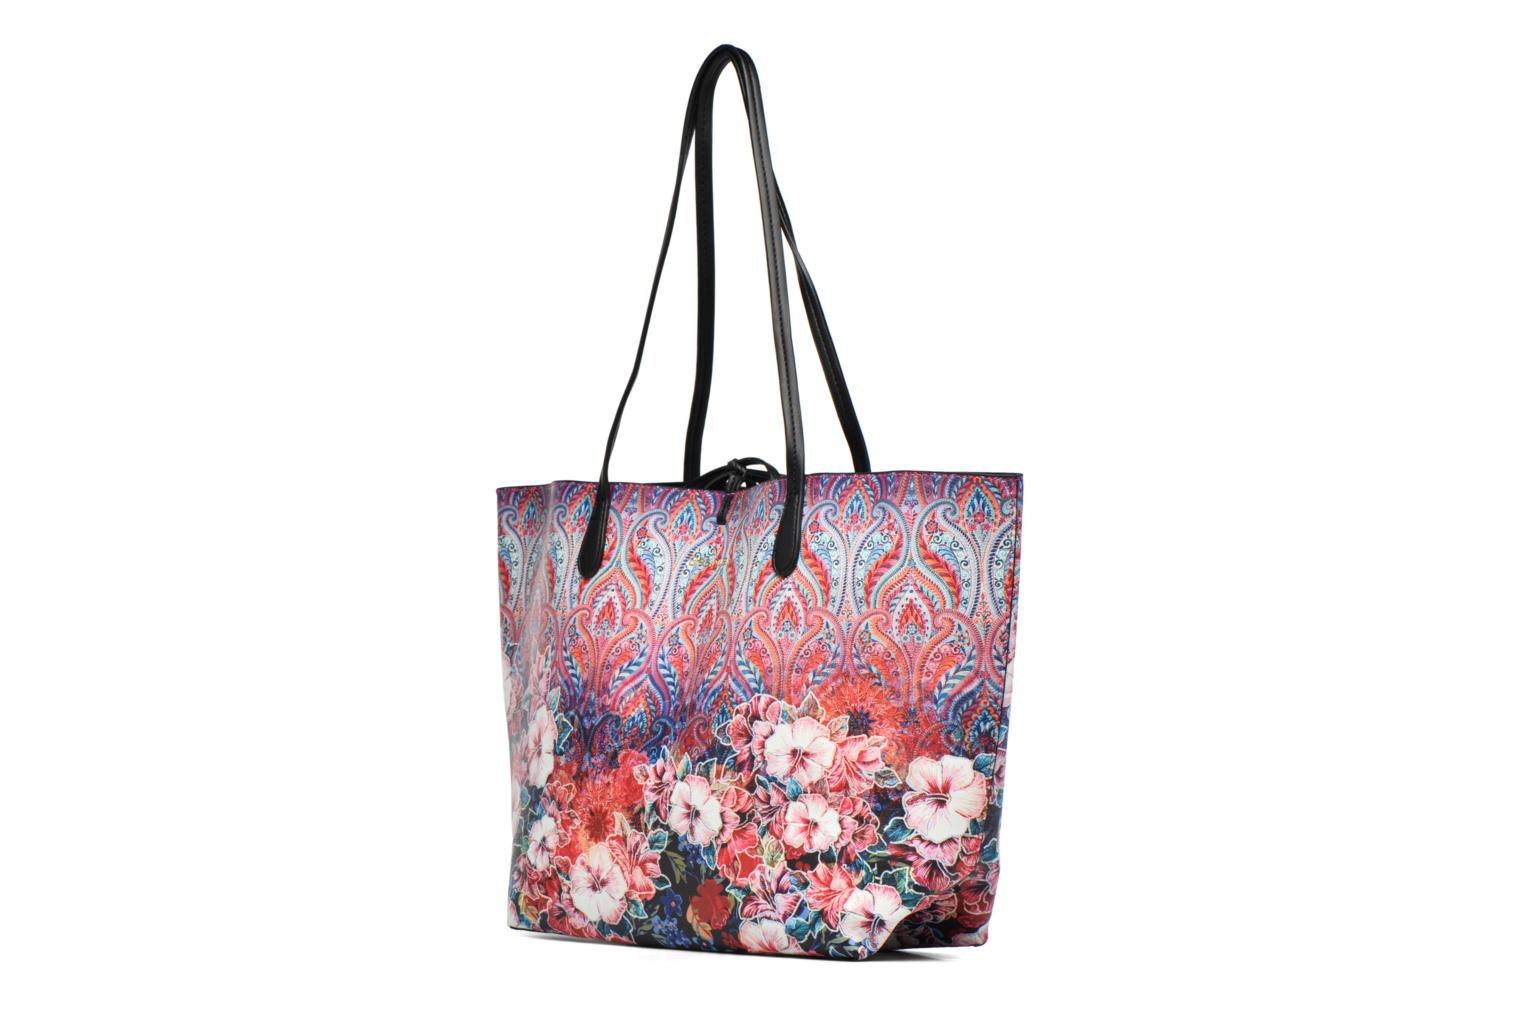 Capri Freya Shopping bag Purple potion